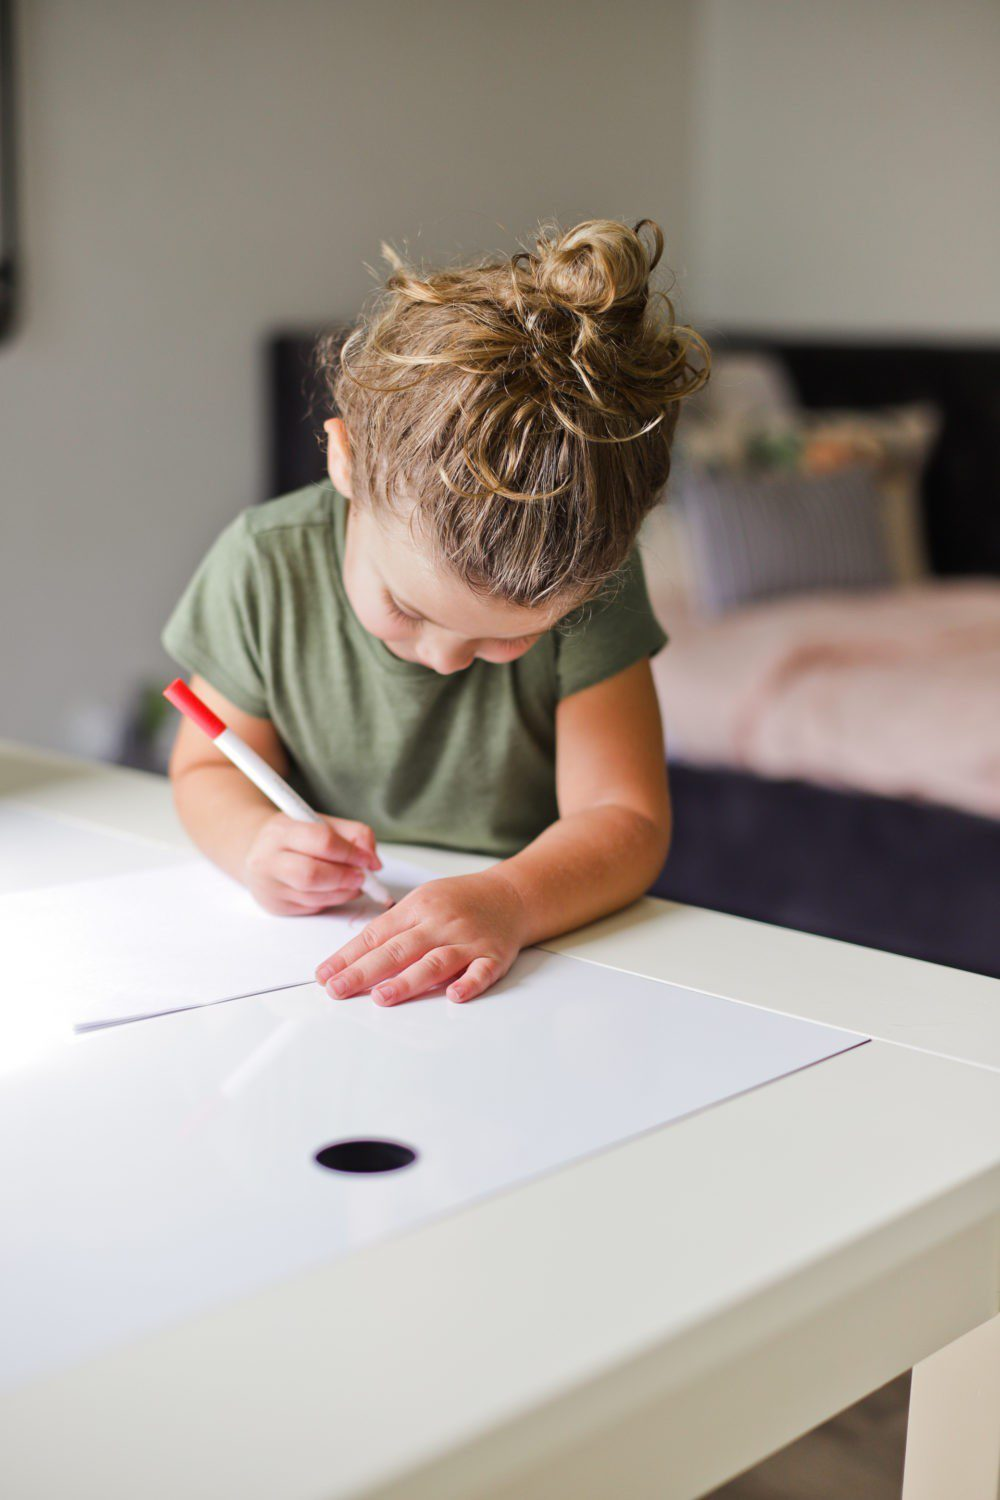 6 Best Tips to Transition Your Child from Crib to Toddler Bed: Aria's Big Girl Bed | 6 Best Tips to Transition Your Child from Crib to Toddler Bed: Aria's Big Girl Bed by popular Florida lifestyle blog, Fresh Mommy: image of a little girl coloring a her play art table.